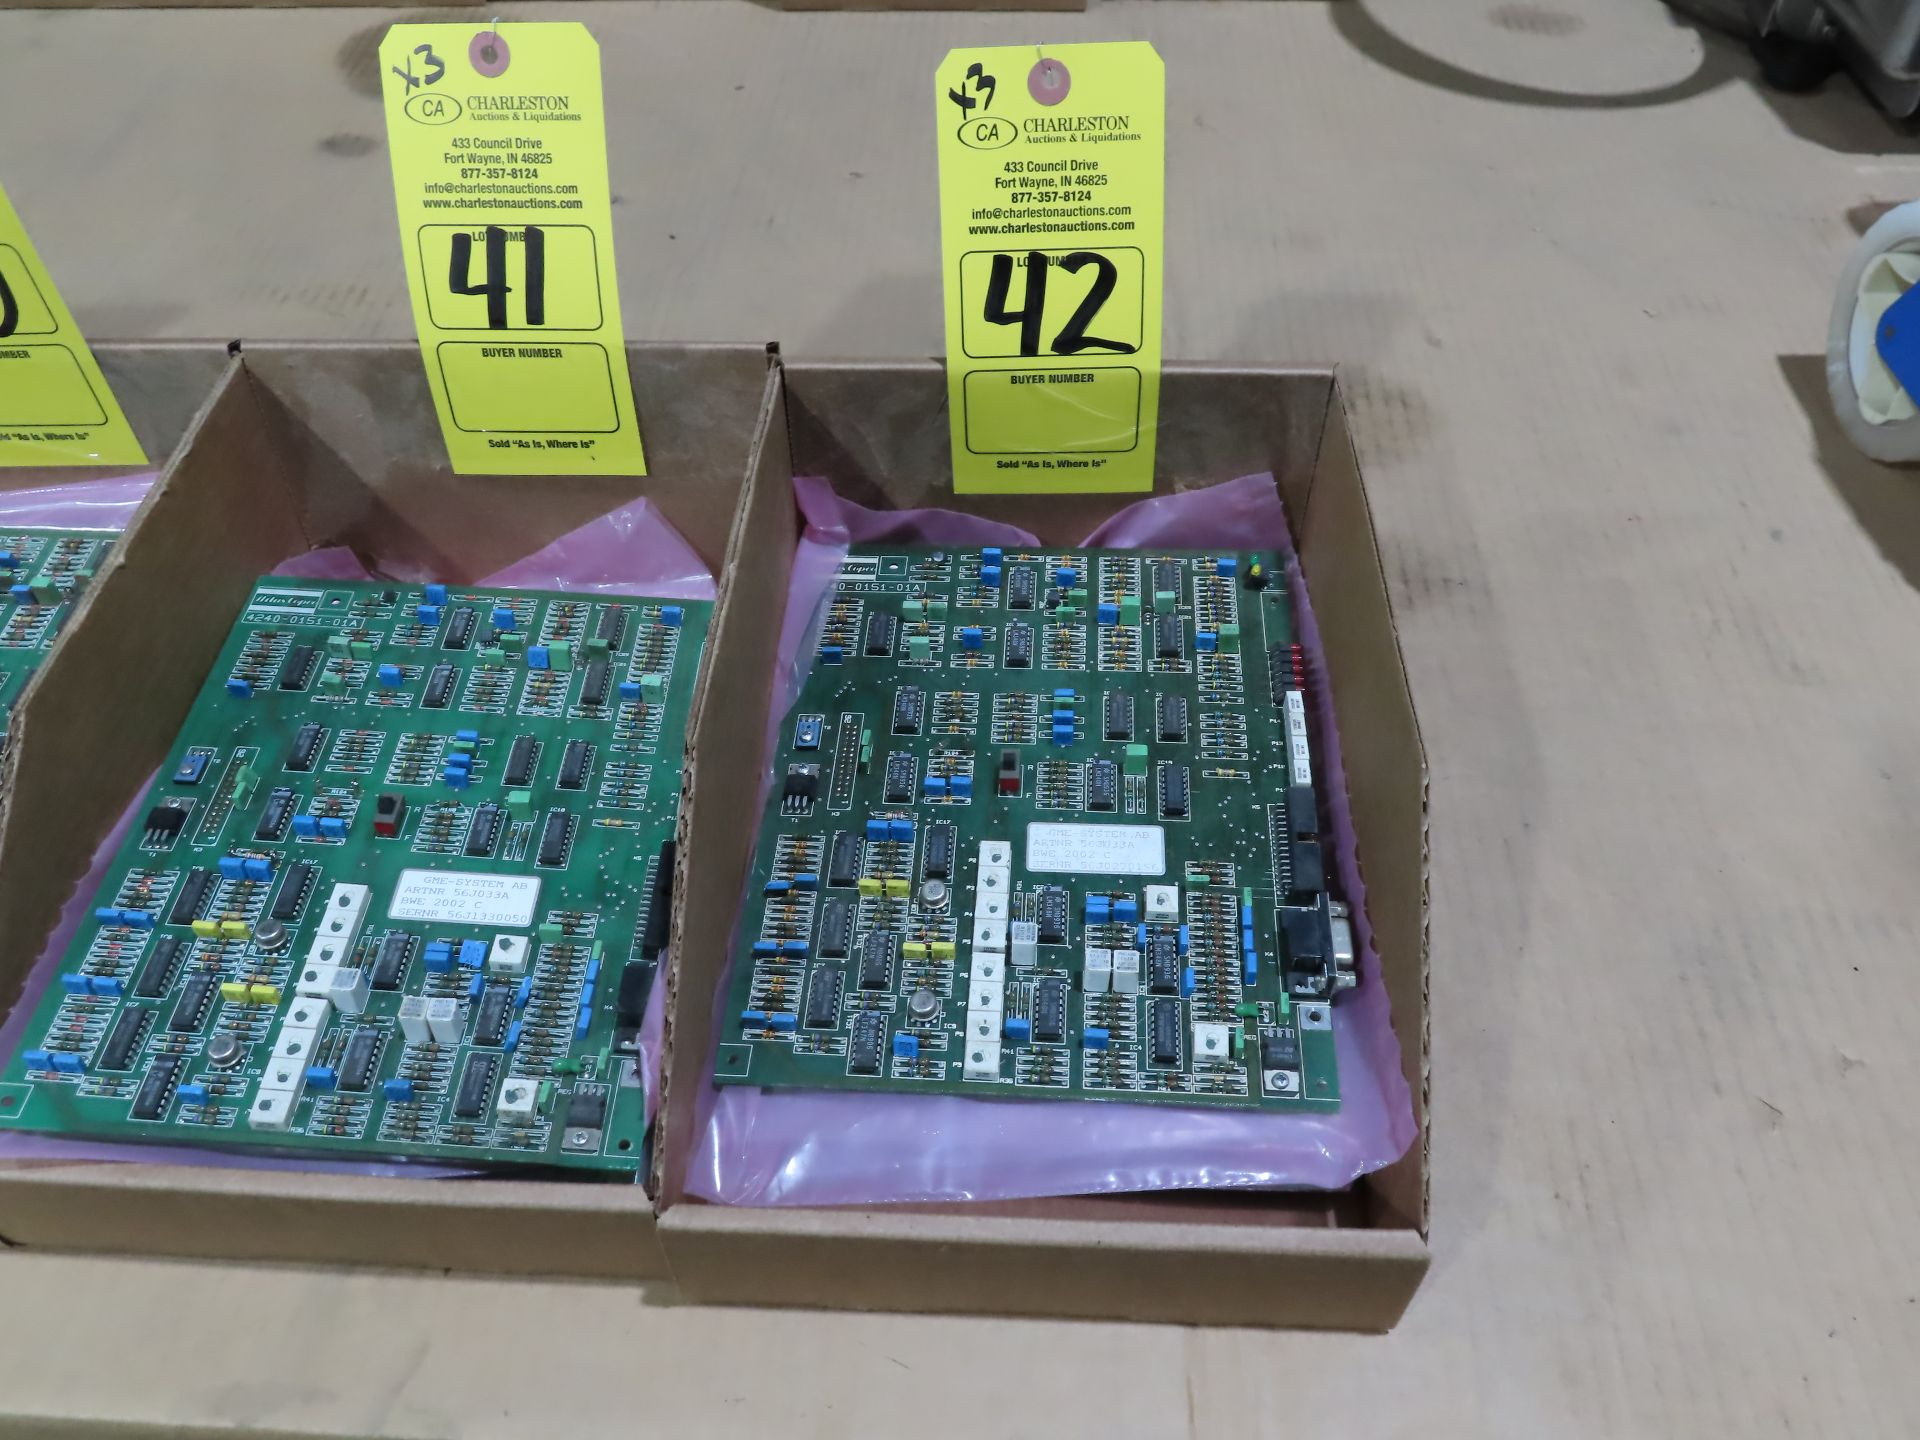 Lot 42 - Qty 3 Altas Copco model 56J033A control boards, as always, with Brolyn LLC auctions, all lots can be